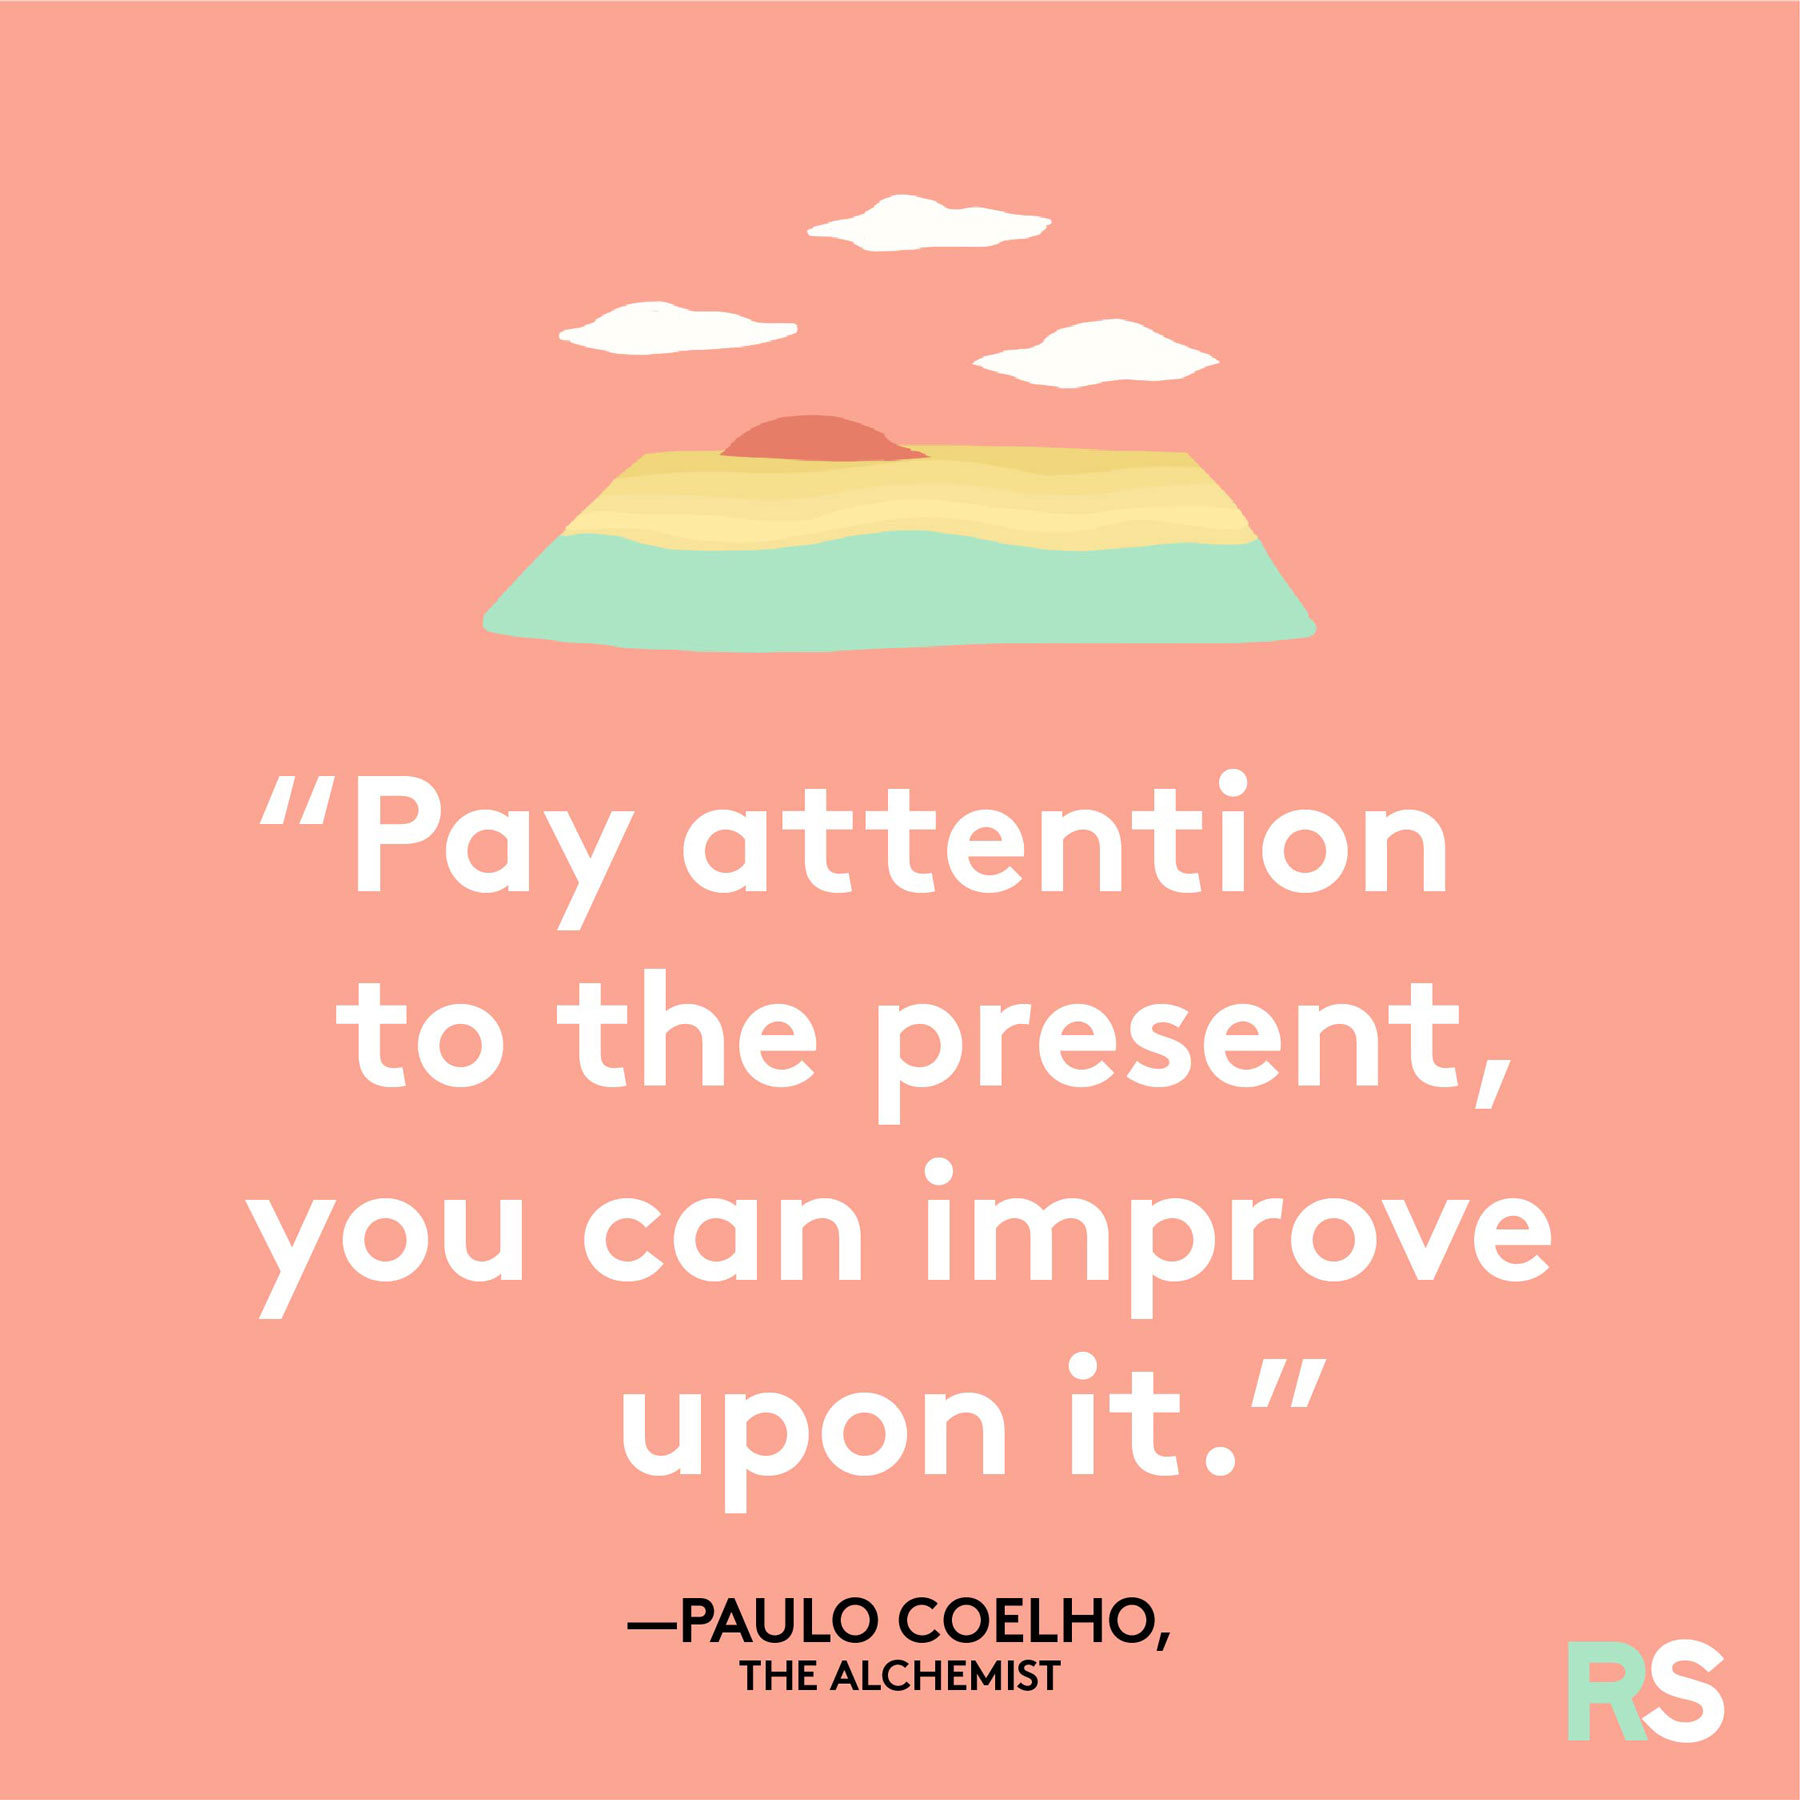 Positive motivating quotes, captions, messages – Paulo Coelho, The Alchemist quote